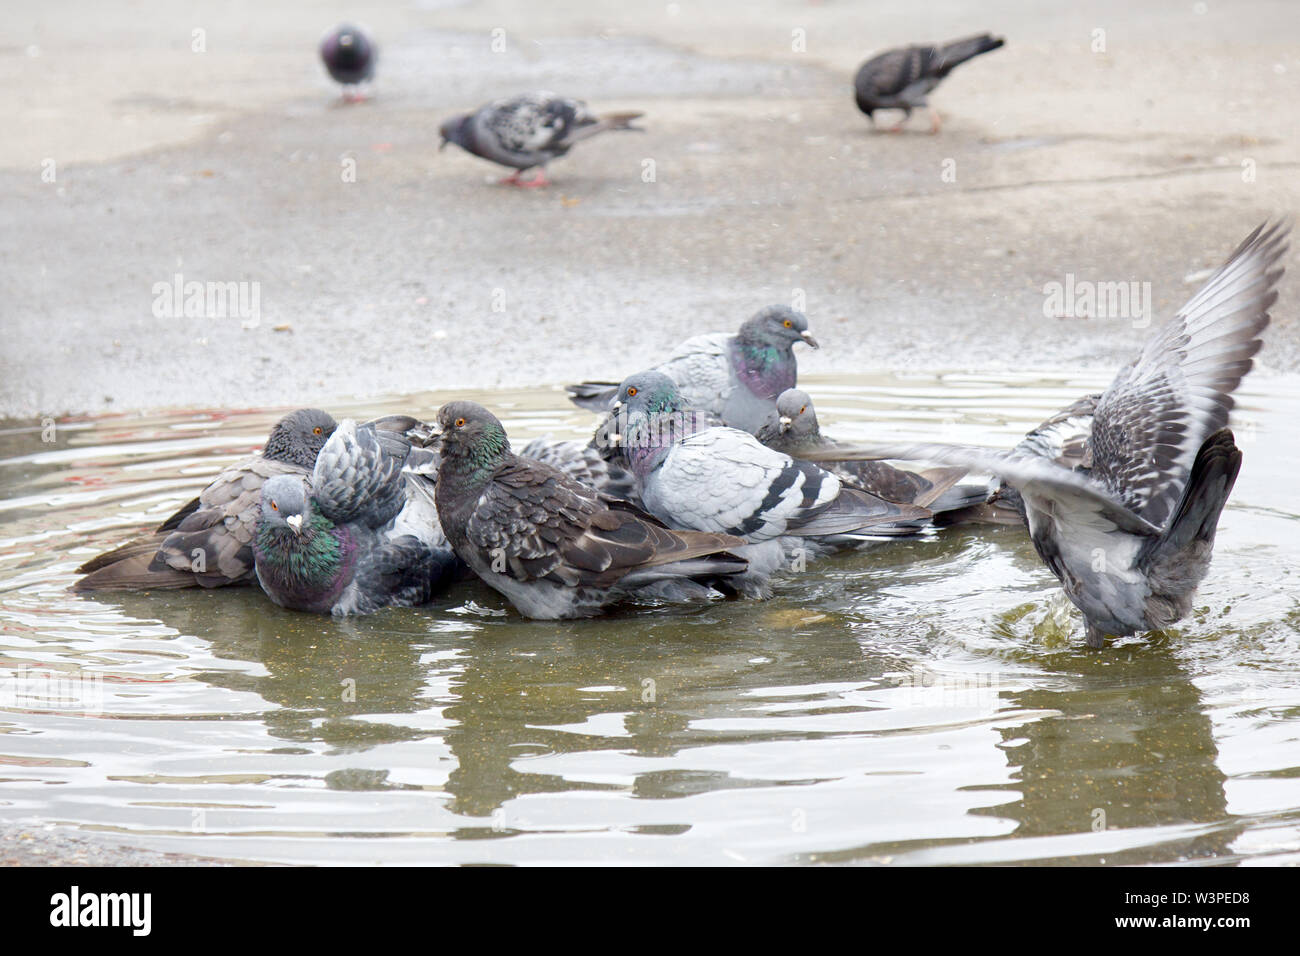 Urban pigeon bathed in puddle after rain. Birds in the city in Eastern Europe - Stock Image